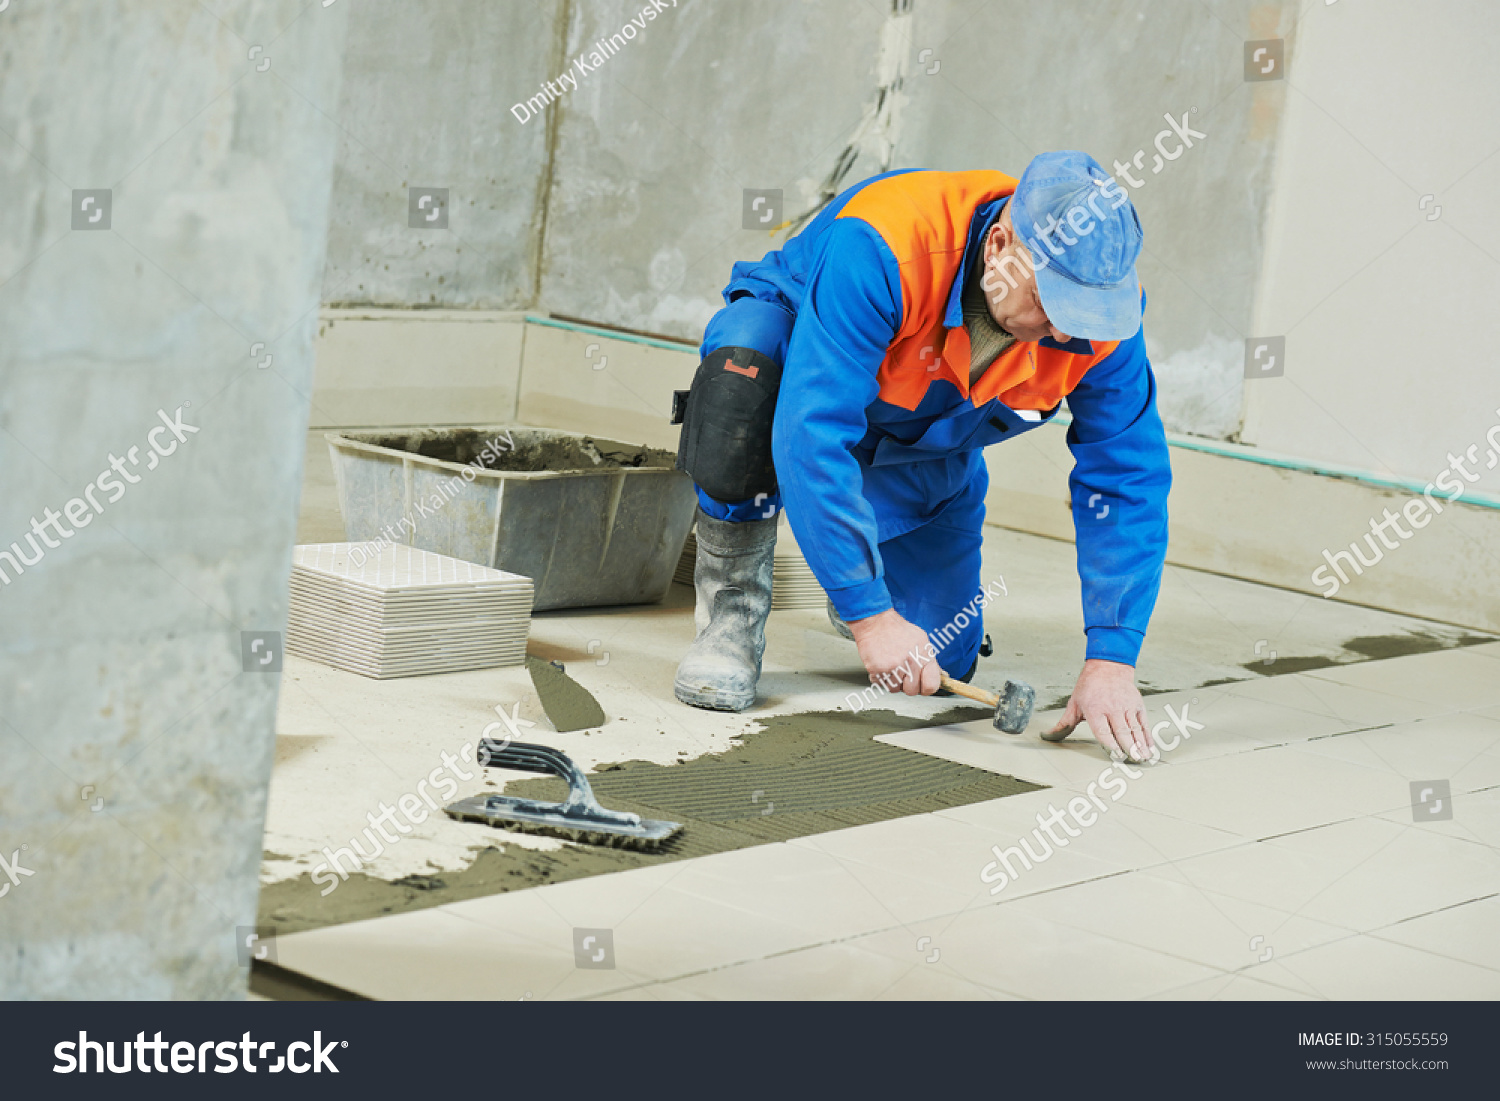 Floor Tile Workers : Industrial tiler builder worker installing floor tile at